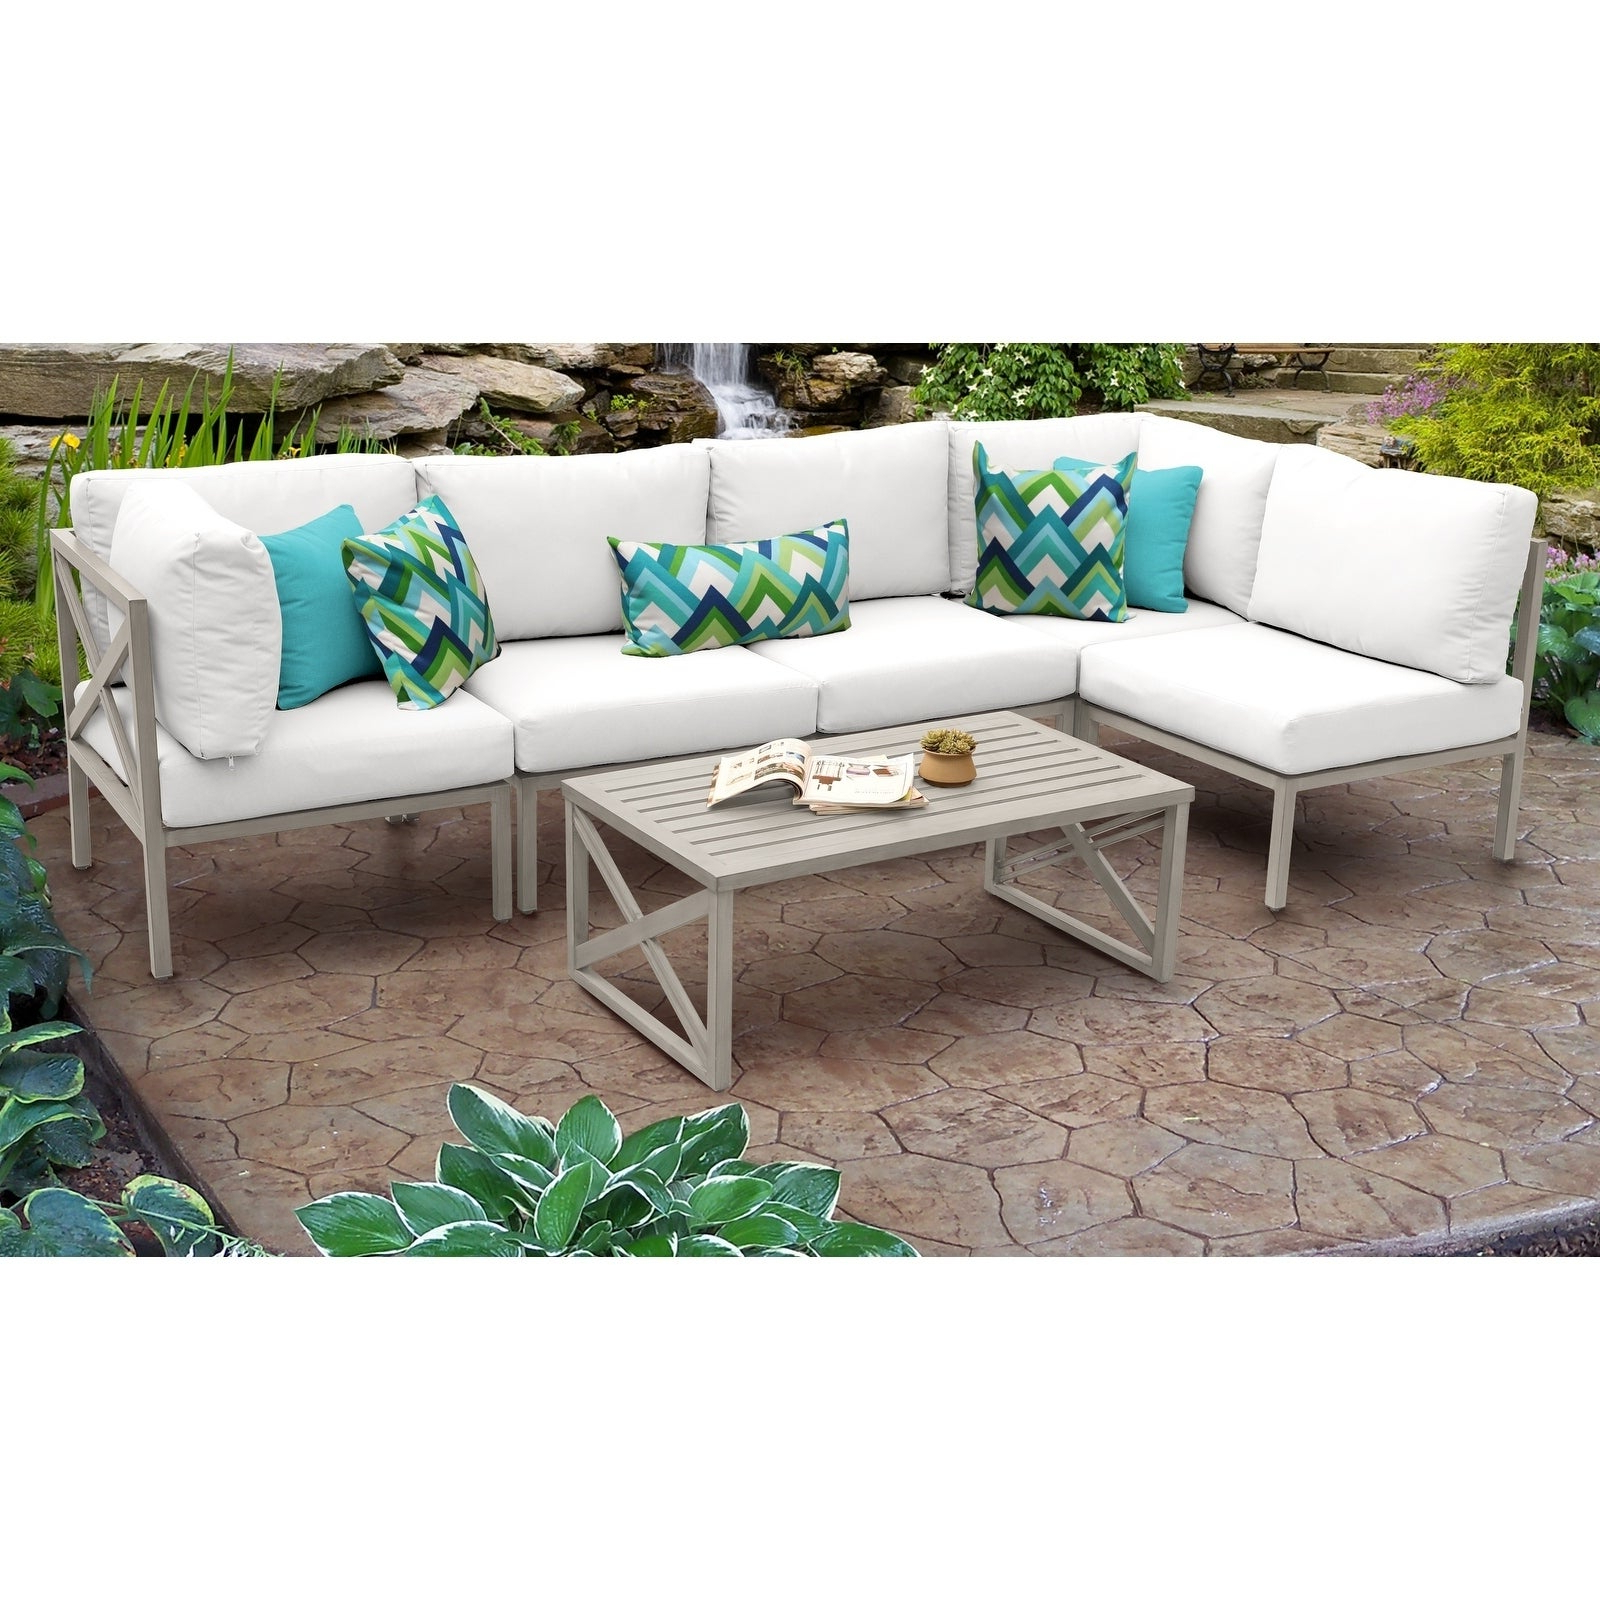 Carlisle 6 Piece Outdoor Wicker Patio Furniture Set 06A With Regard To Preferred Carlisle Patio Sofas With Cushions (View 3 of 25)